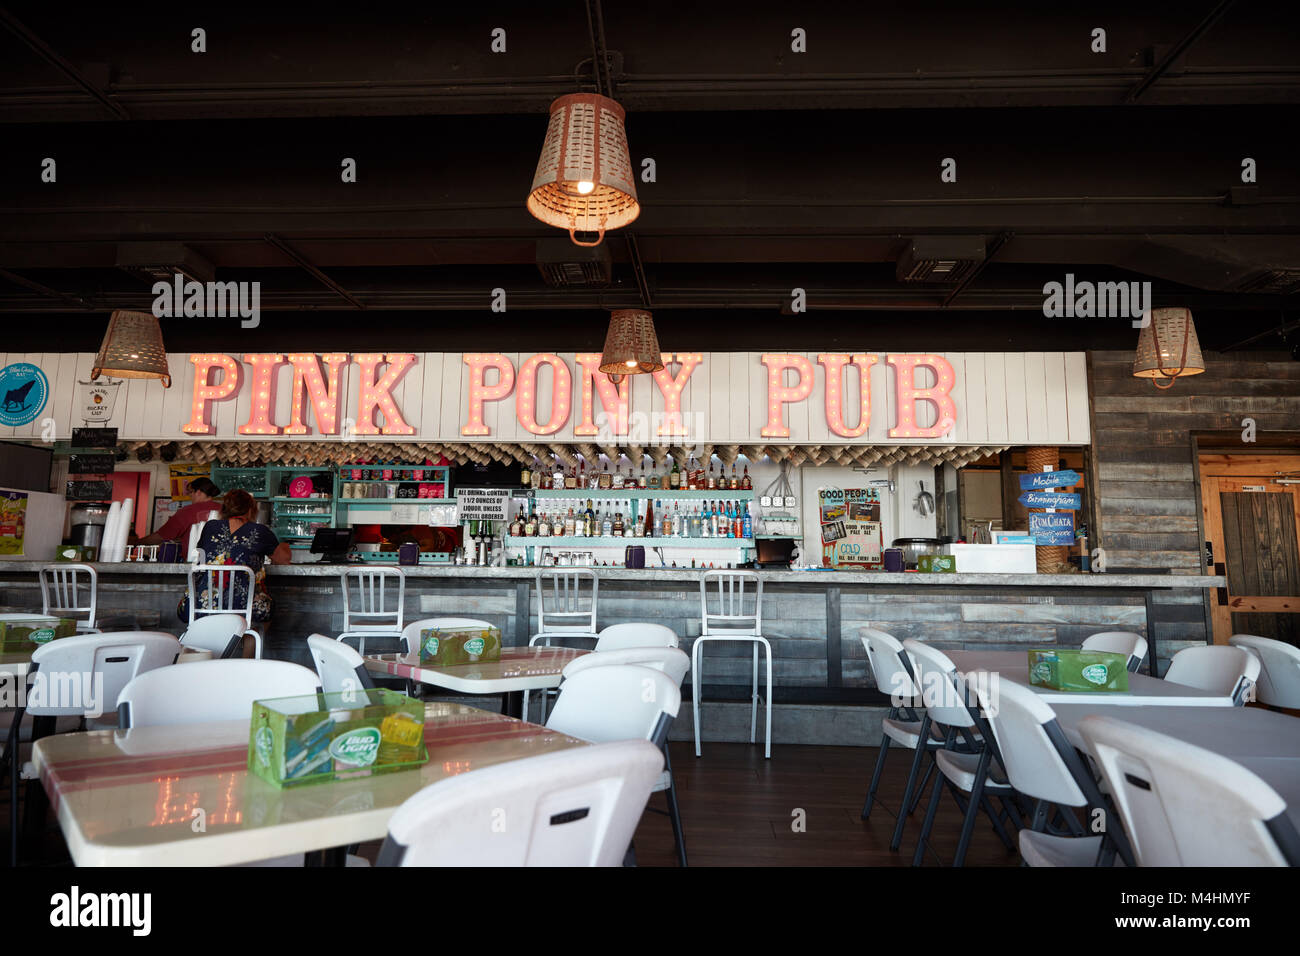 Interior of the Pink Pony Pub in Gulf Shores, Alabama Stock Photo